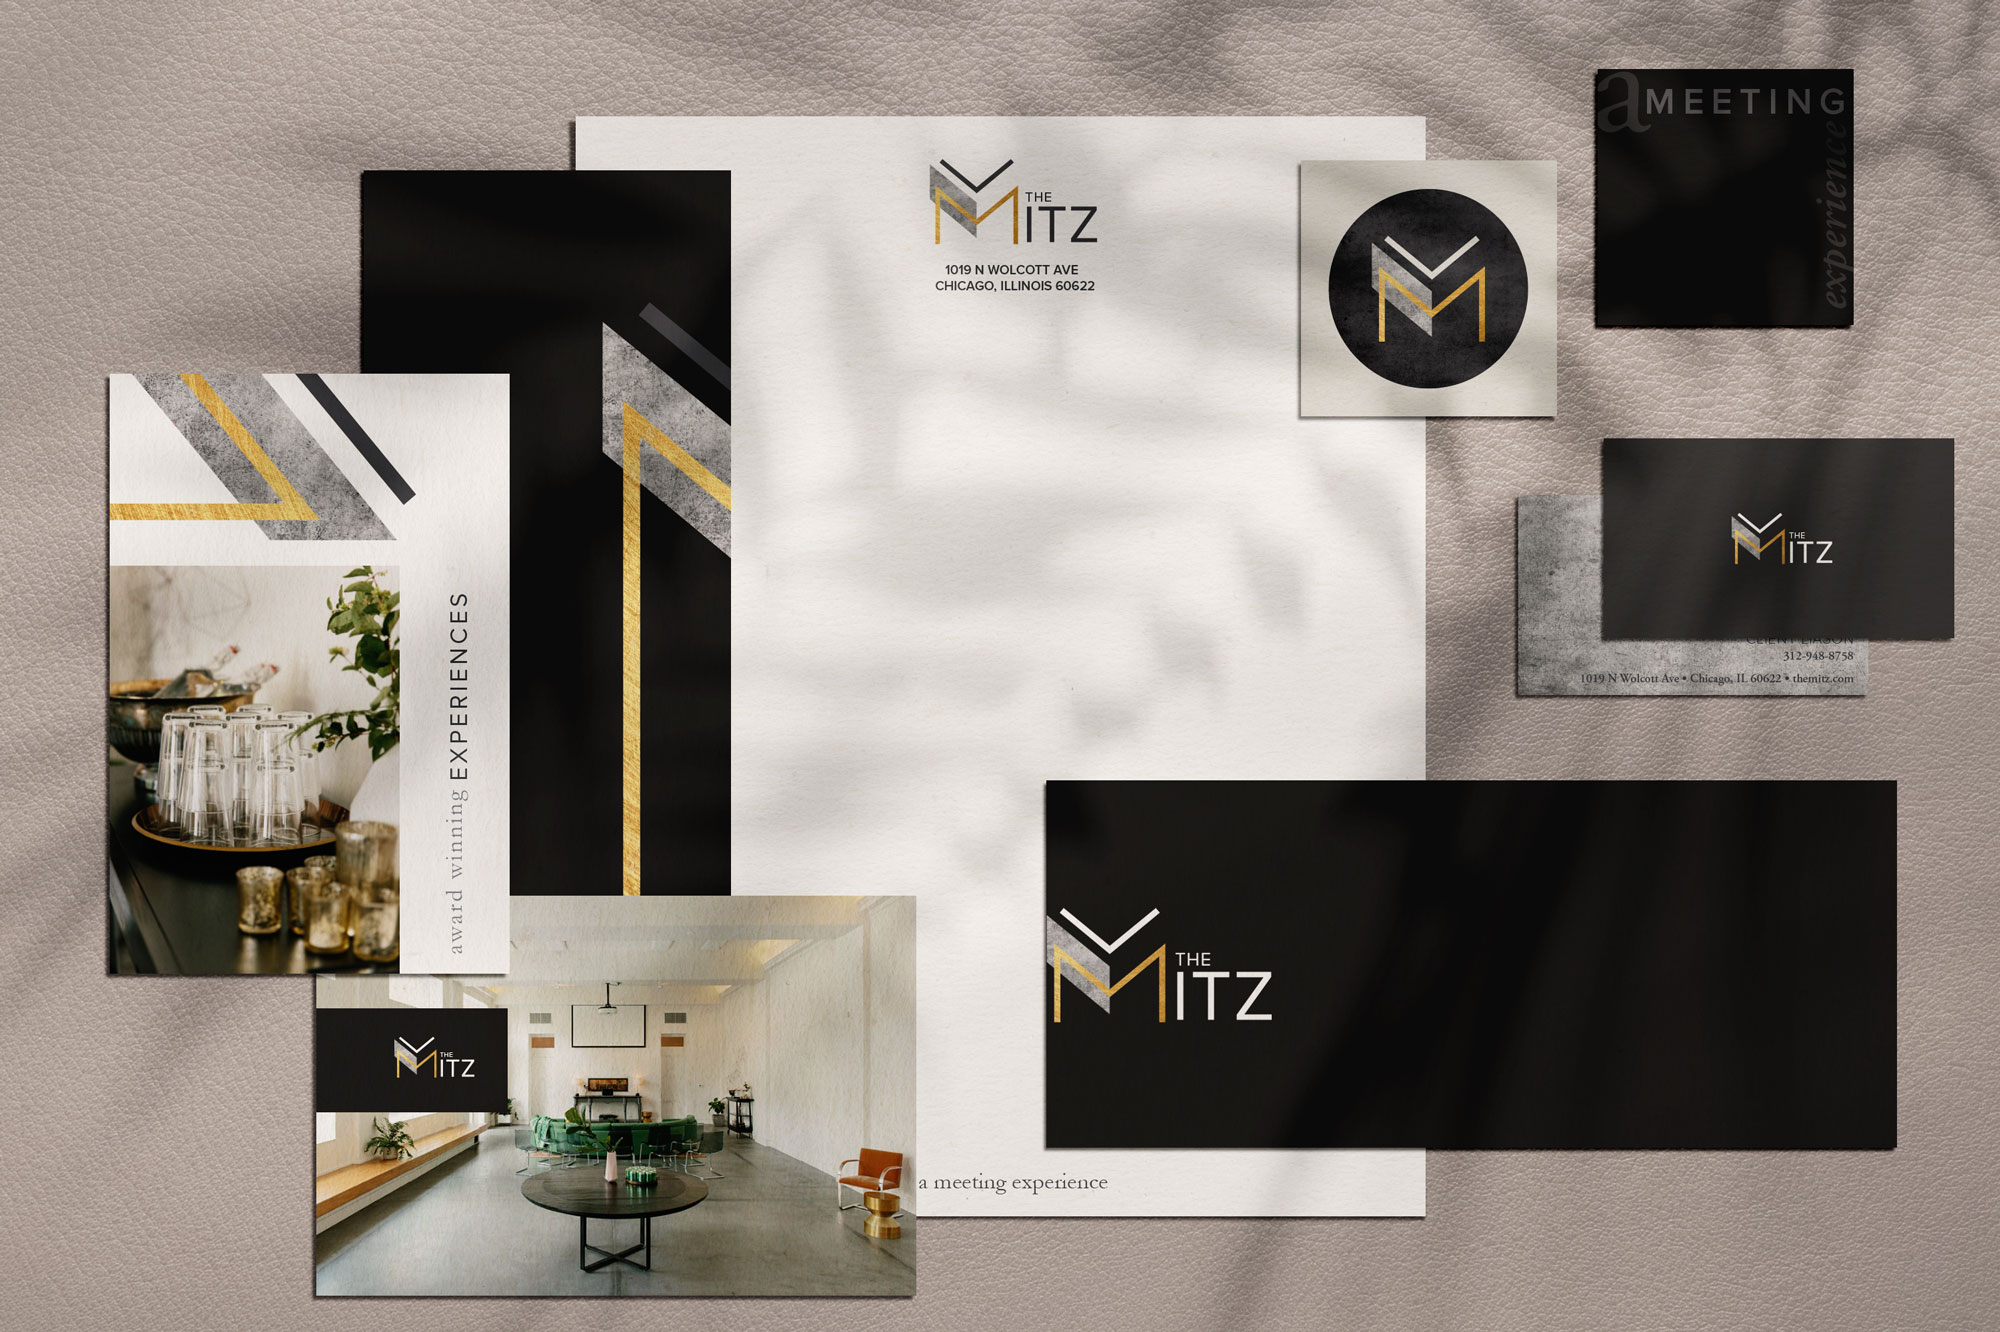 Brand Identity and Stationery for The Mitz, Chicago. Designed by Sarah Ehlinger | brand Spanking You